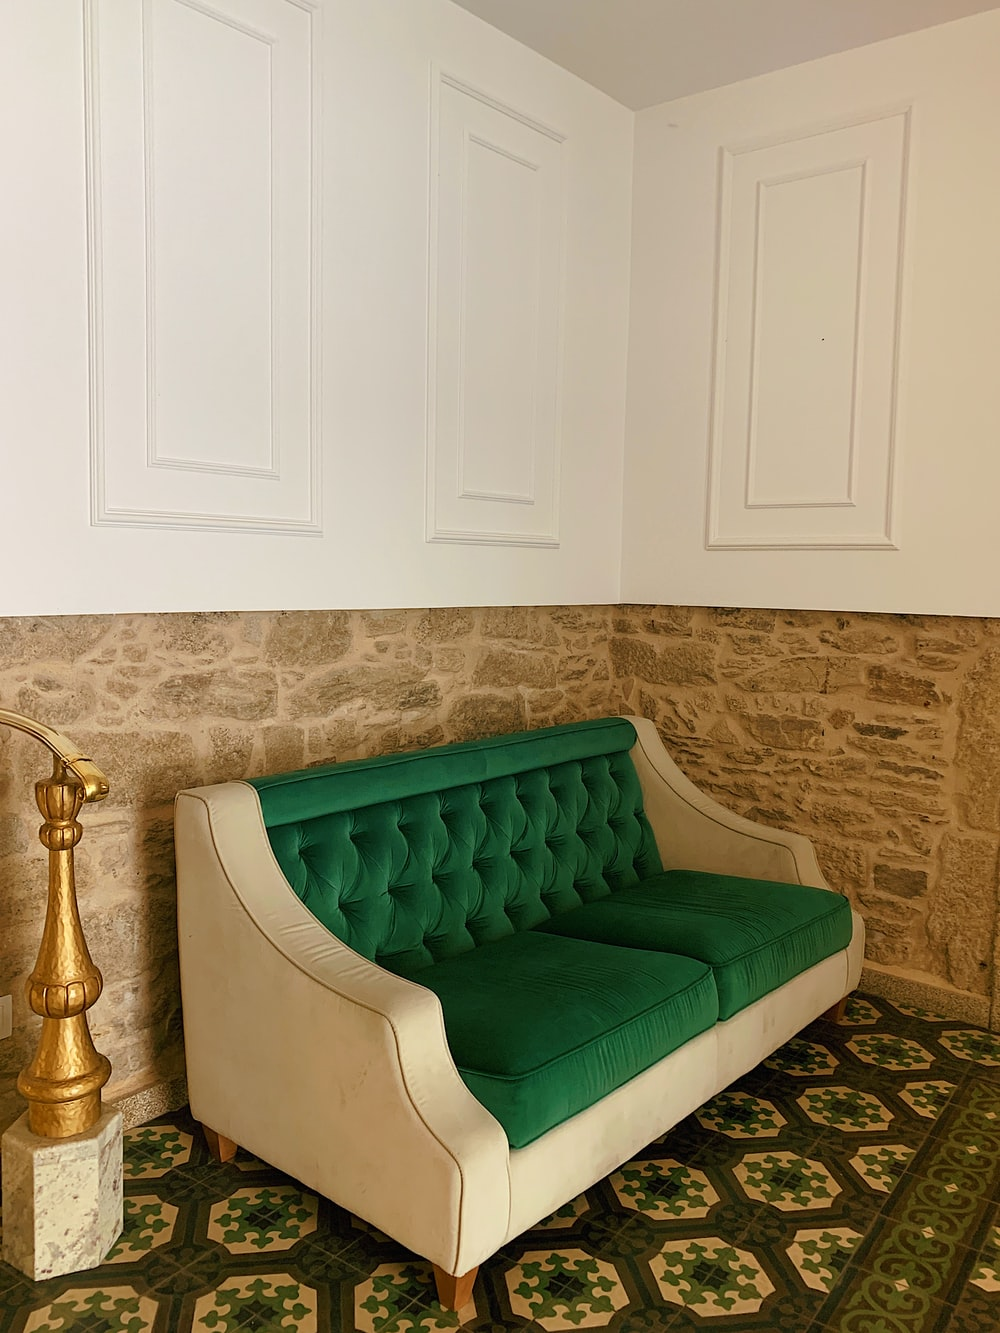 green tufted loveseat by the wall